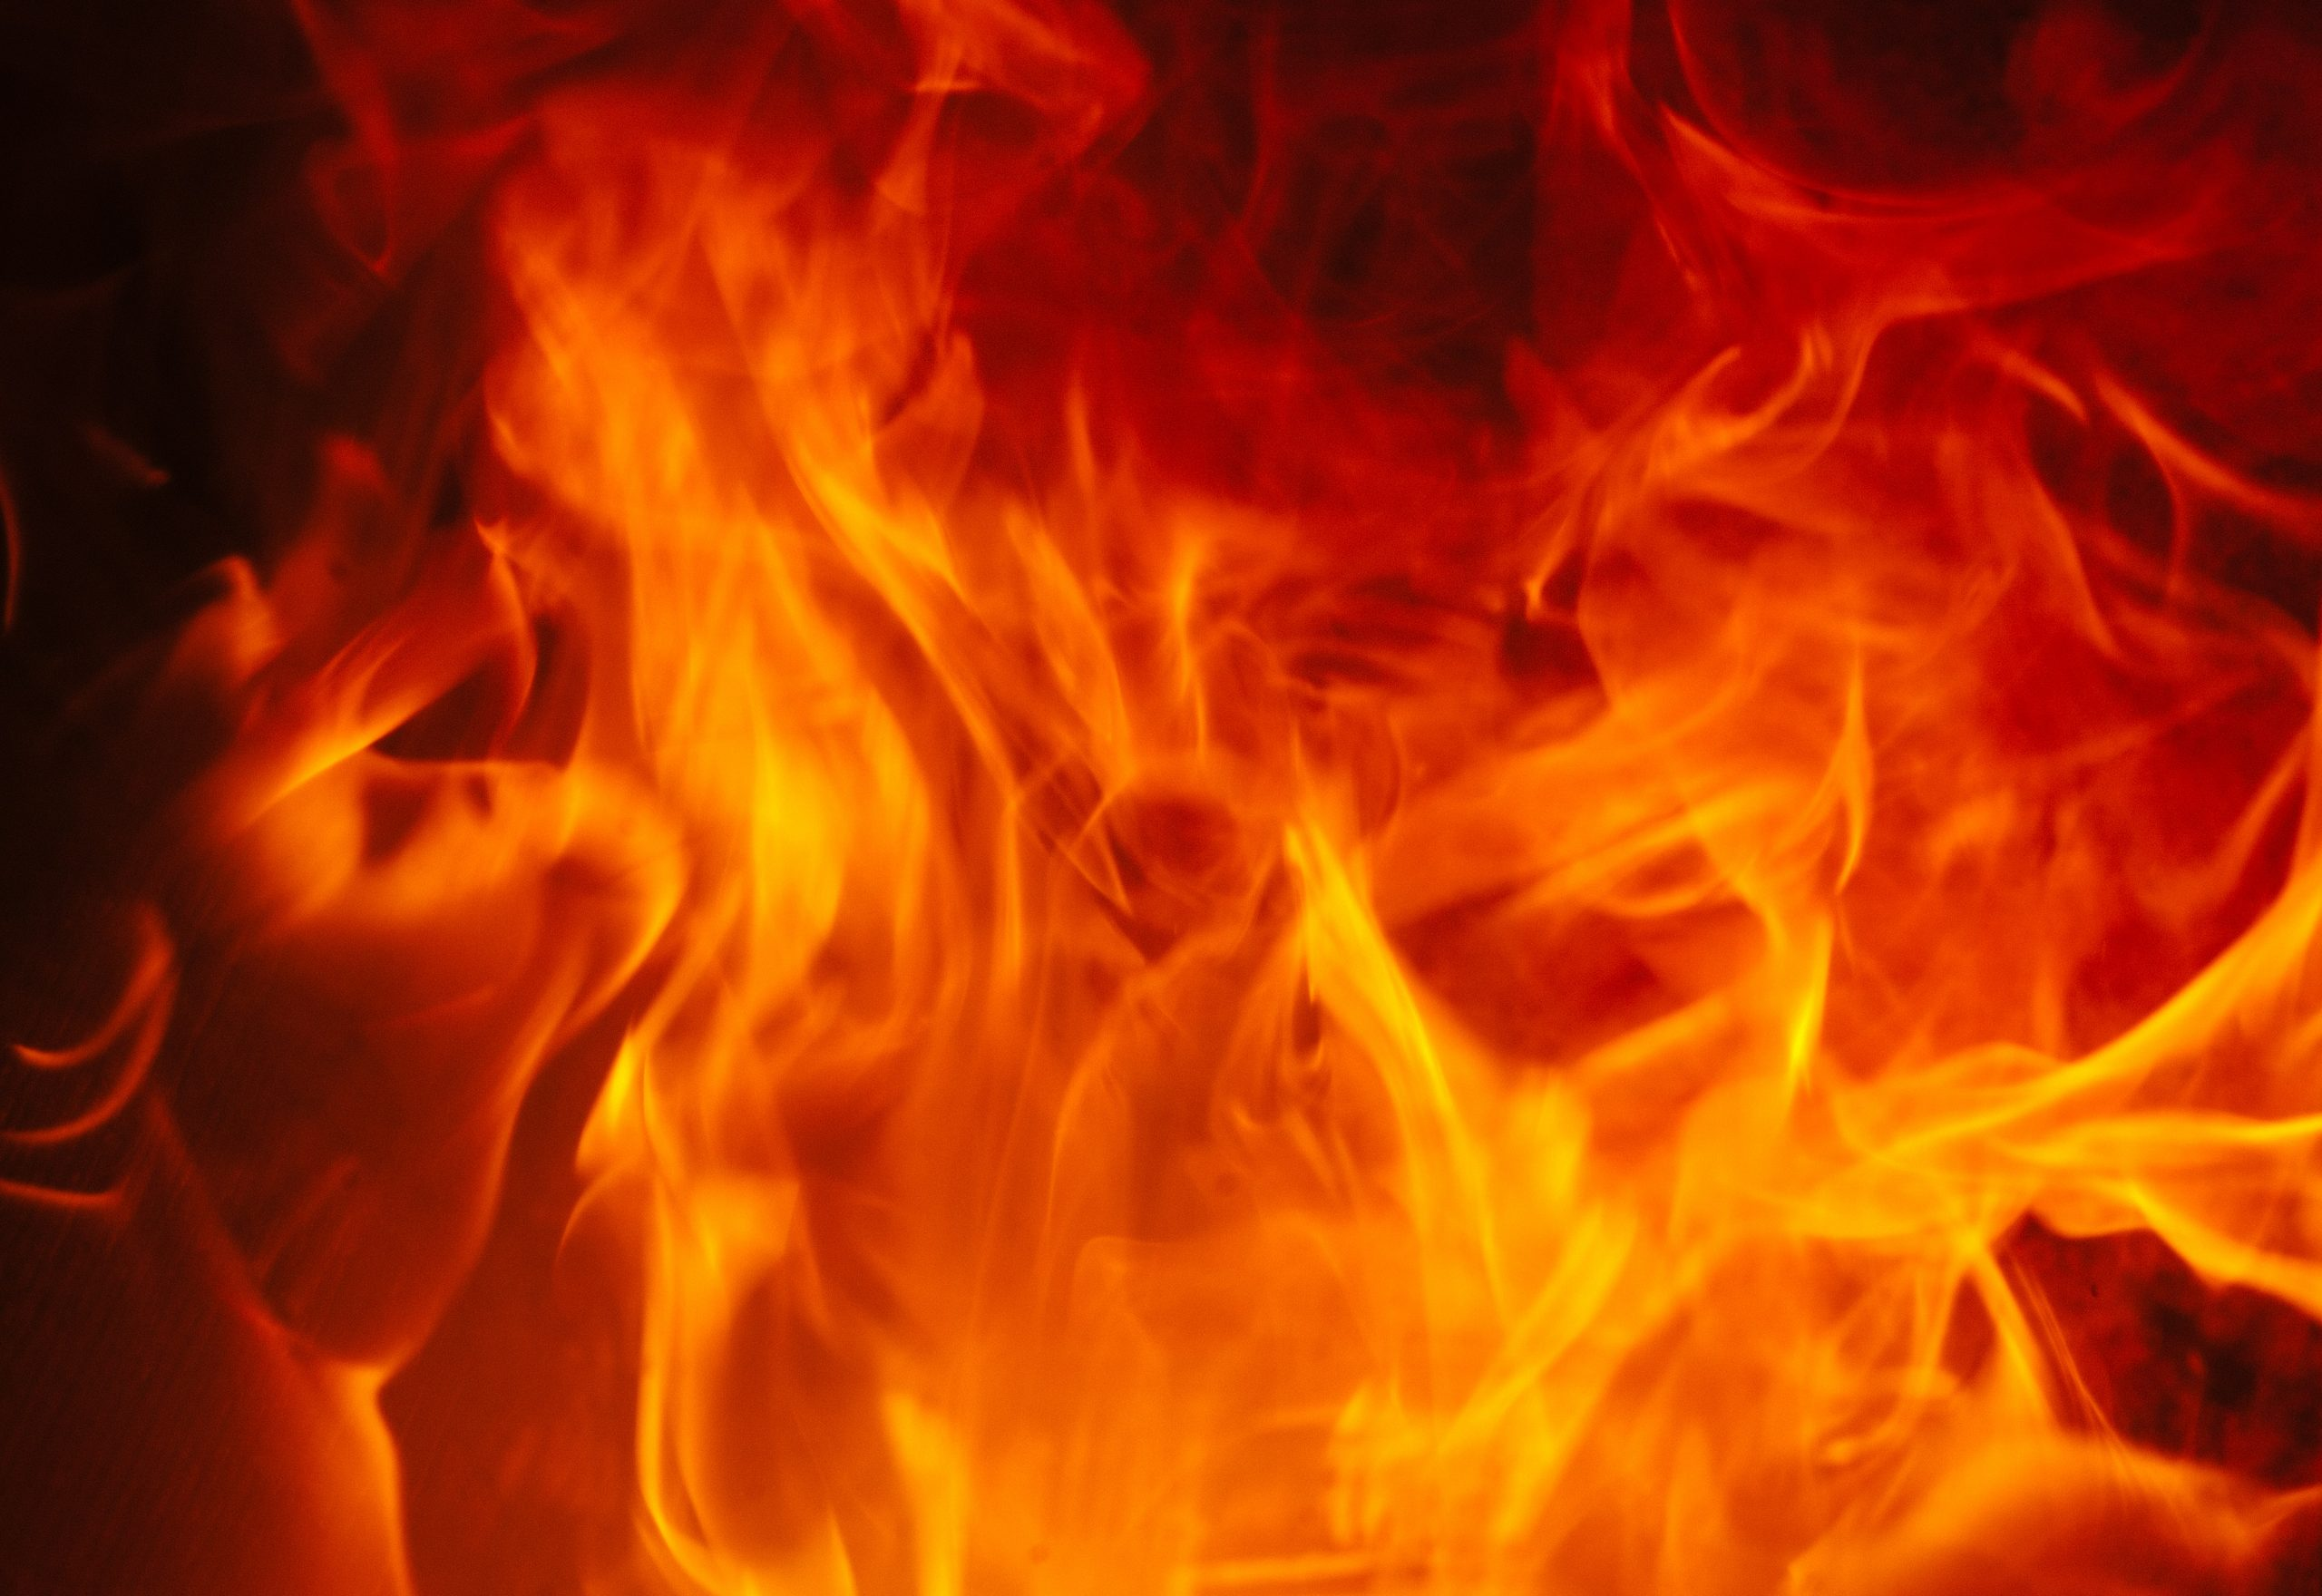 Funding to Help Reduce Electrical Fires in Homes